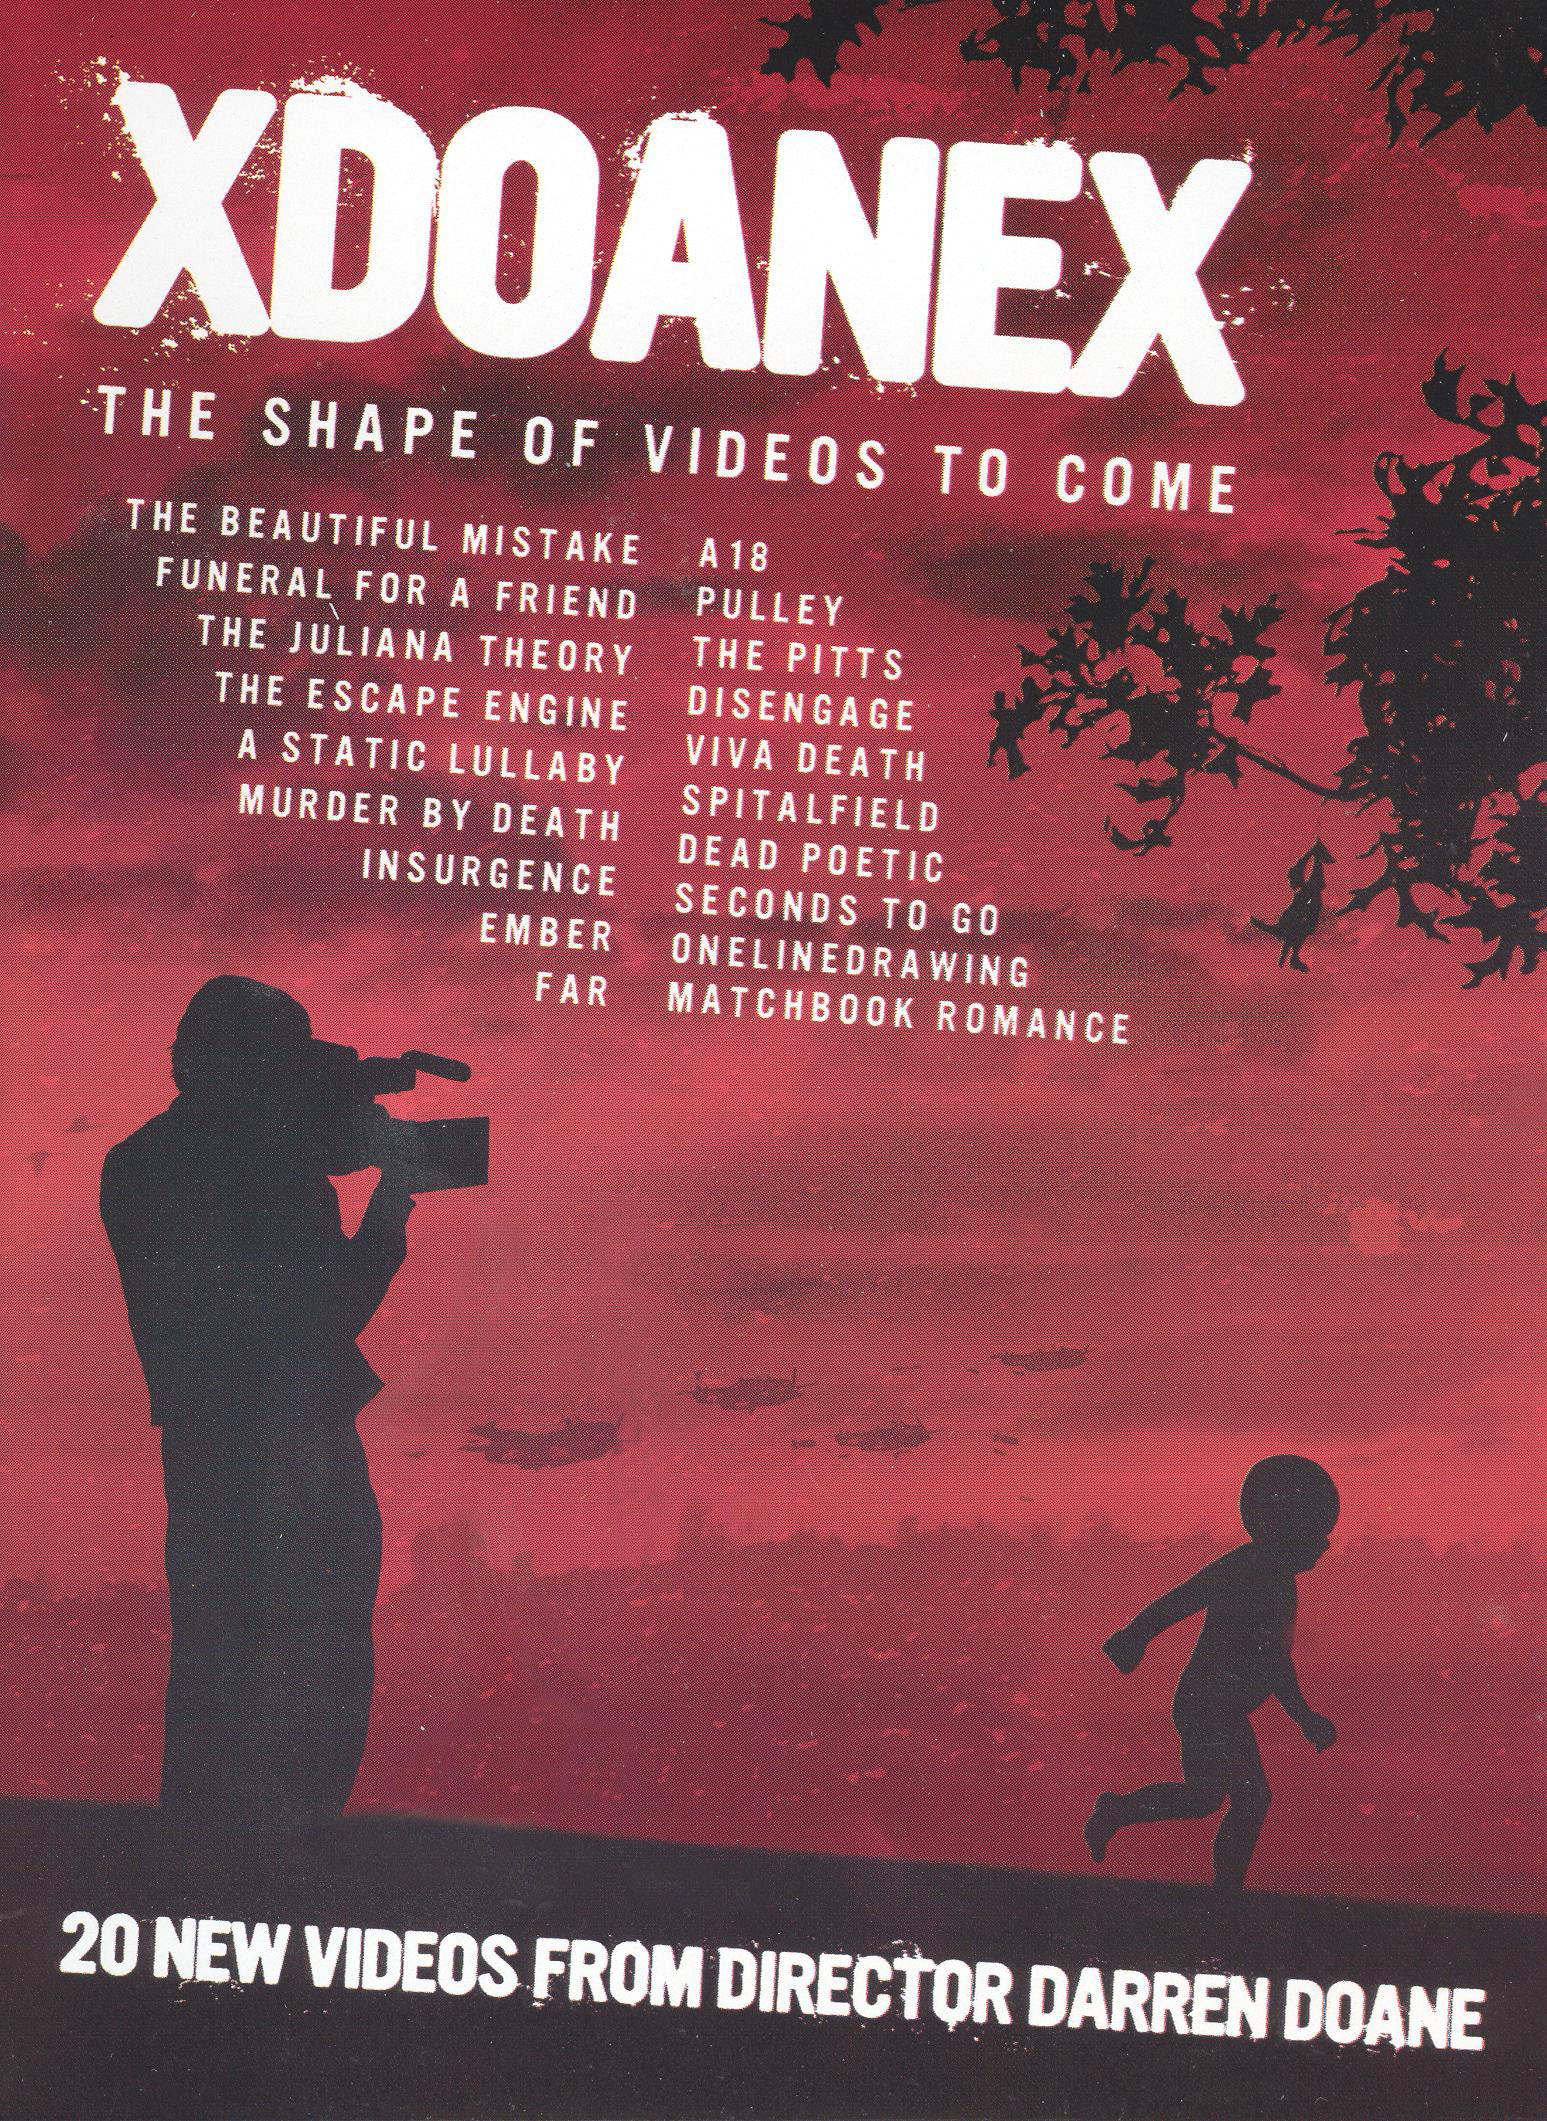 Xdoanex: The Shape of Videos to Come